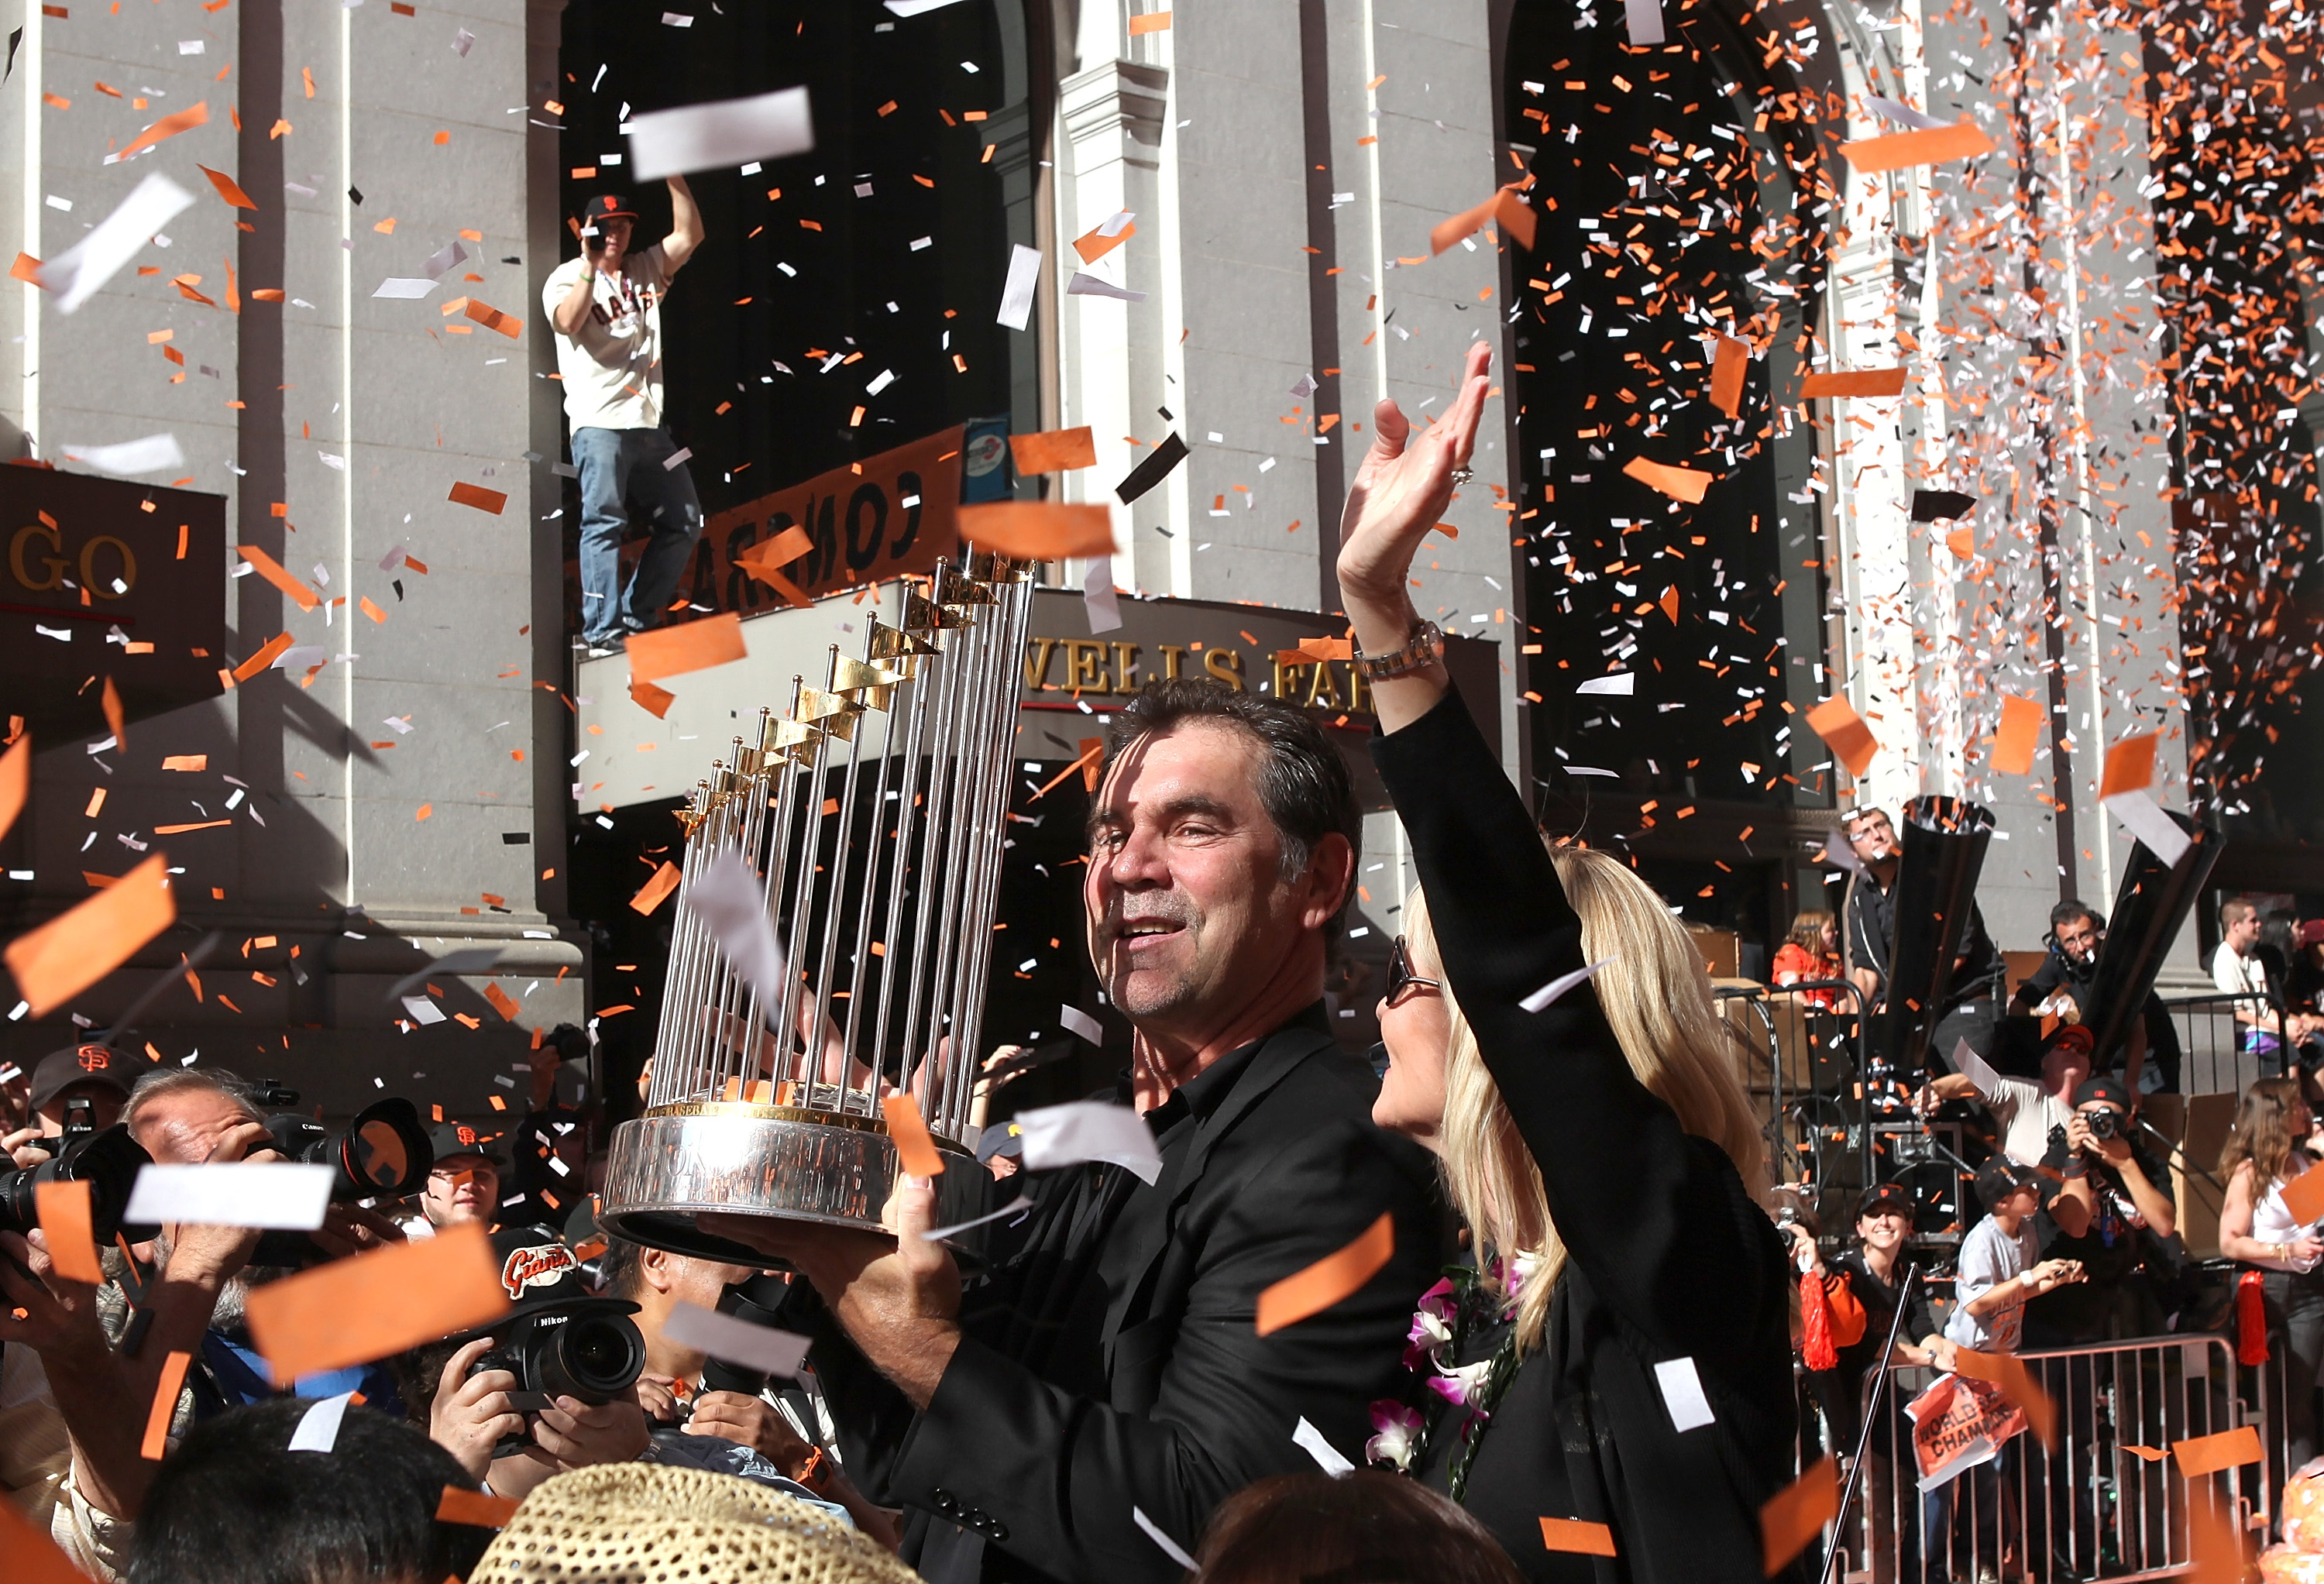 SAN FRANCISCO - NOVEMBER 03:  San Francisco Giants manager Bruce Bochy carries the World Series trophy as he rides in a vintage car during the Giants' vicotry parade on November 3, 2010 in San Francisco, California. Thousands of Giants fans lined the stre